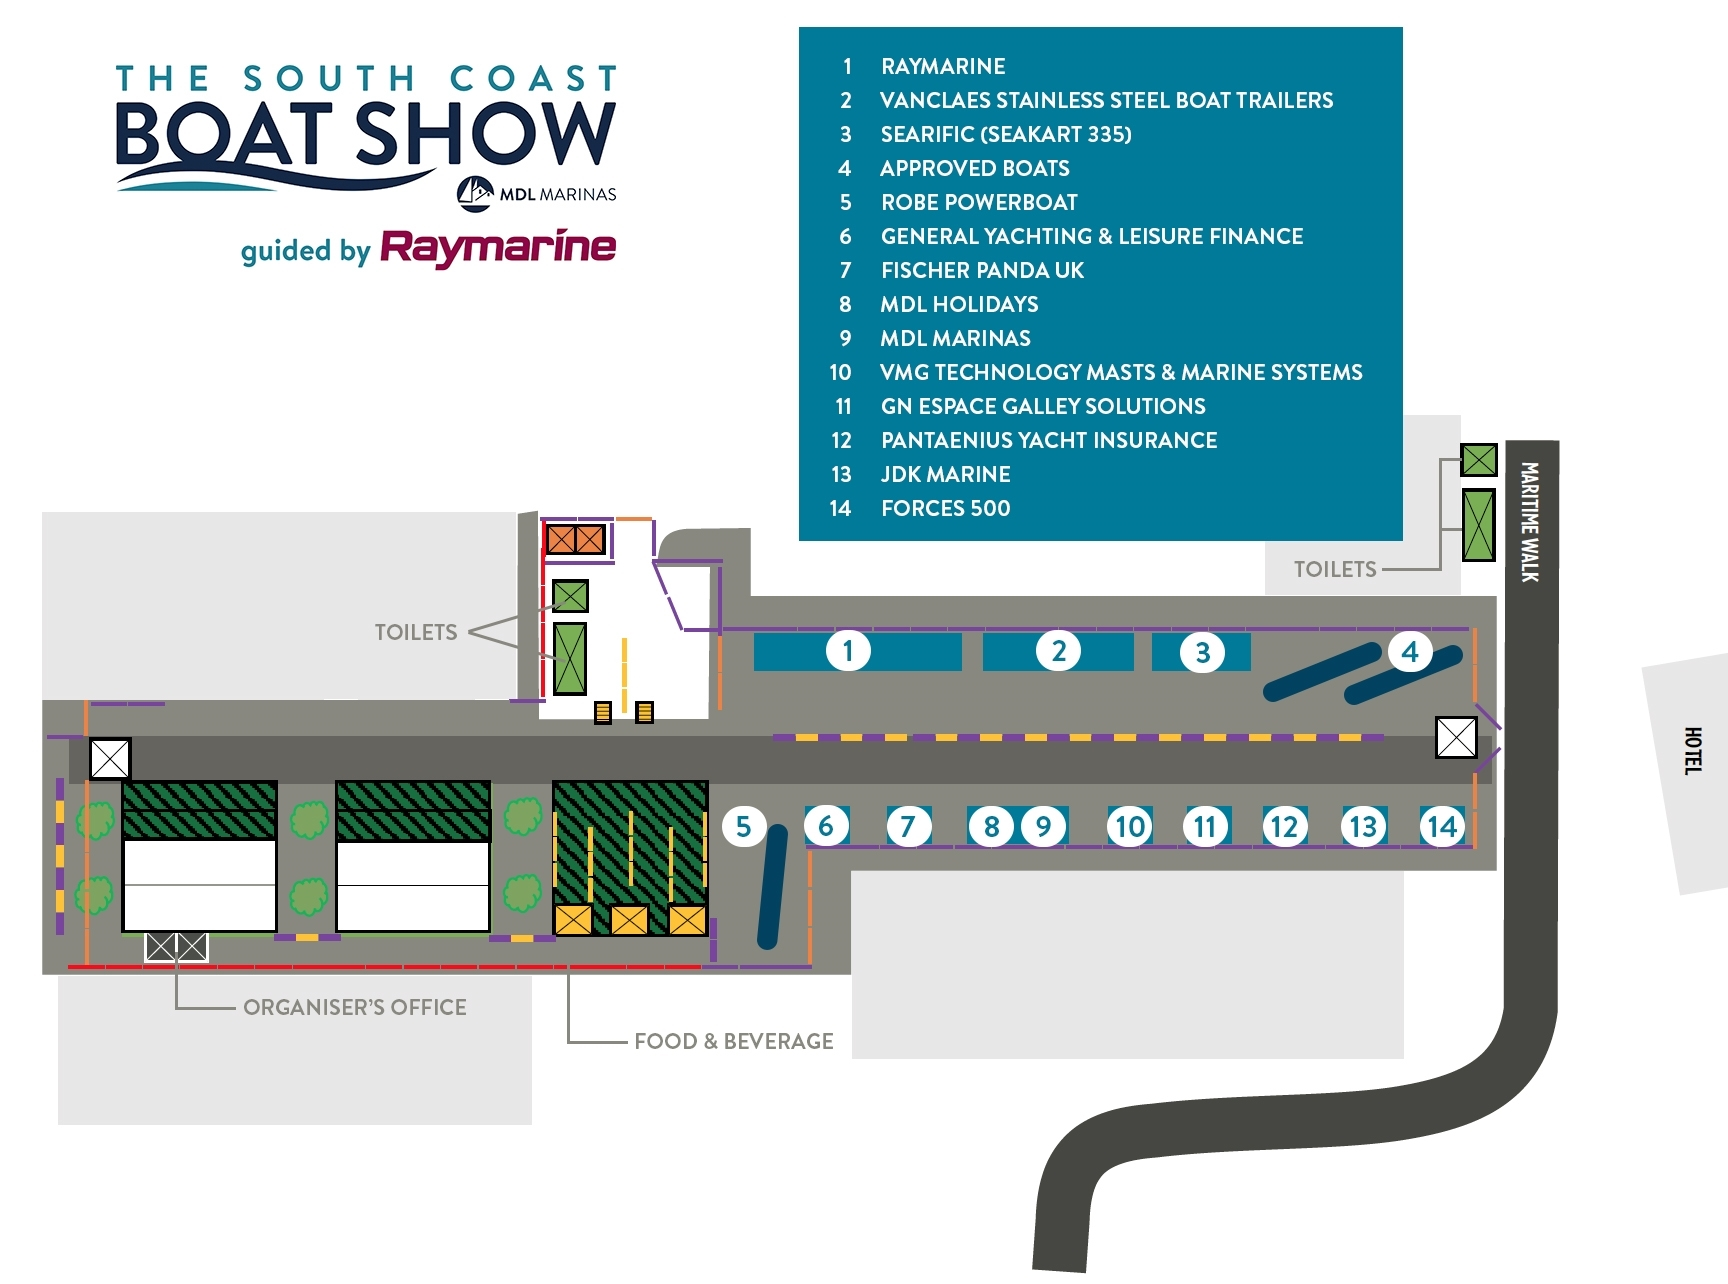 2021 Show Plan - Land Side Exhibitors